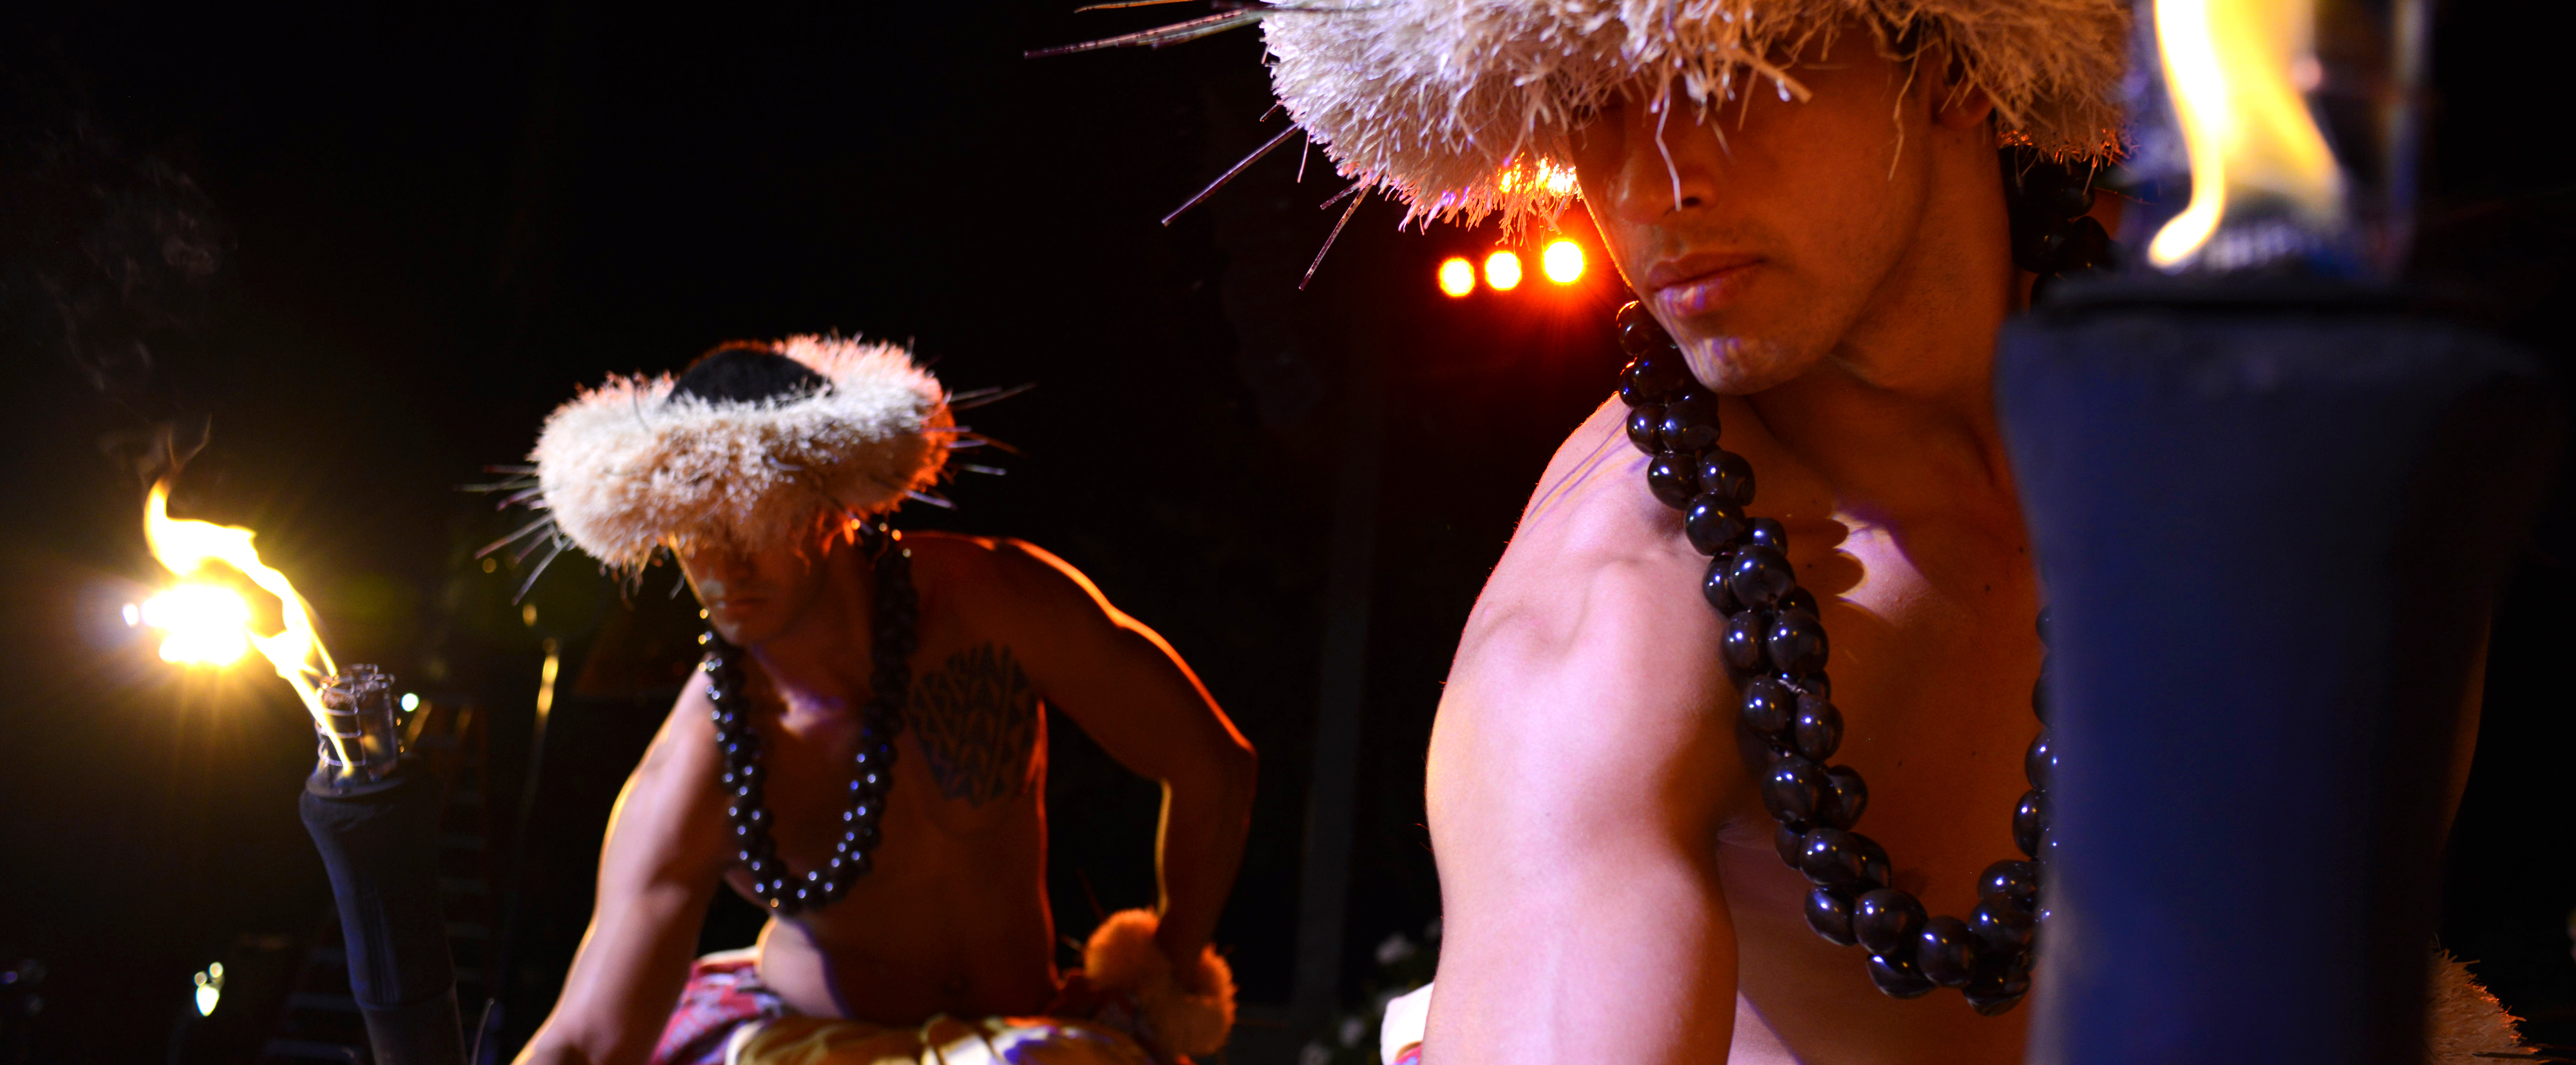 Two shirtless men wearing native headdresses and kukui nut necklaces dance with lit torches